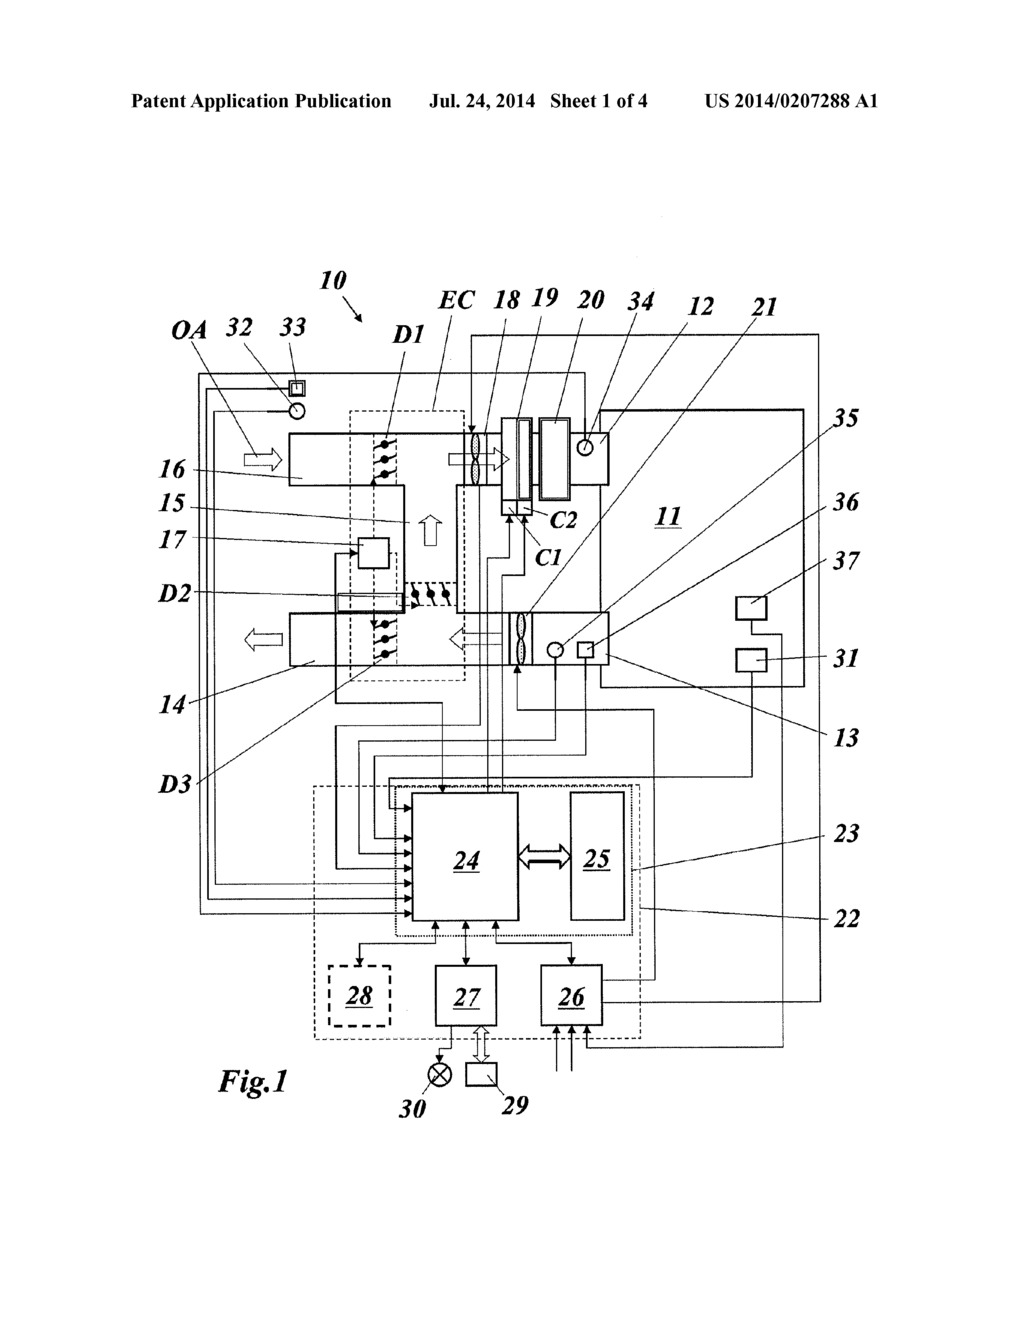 Control Unit For An Hvac System Comprising Economizer And Method Drawing Operating Such Diagram Schematic Image 02